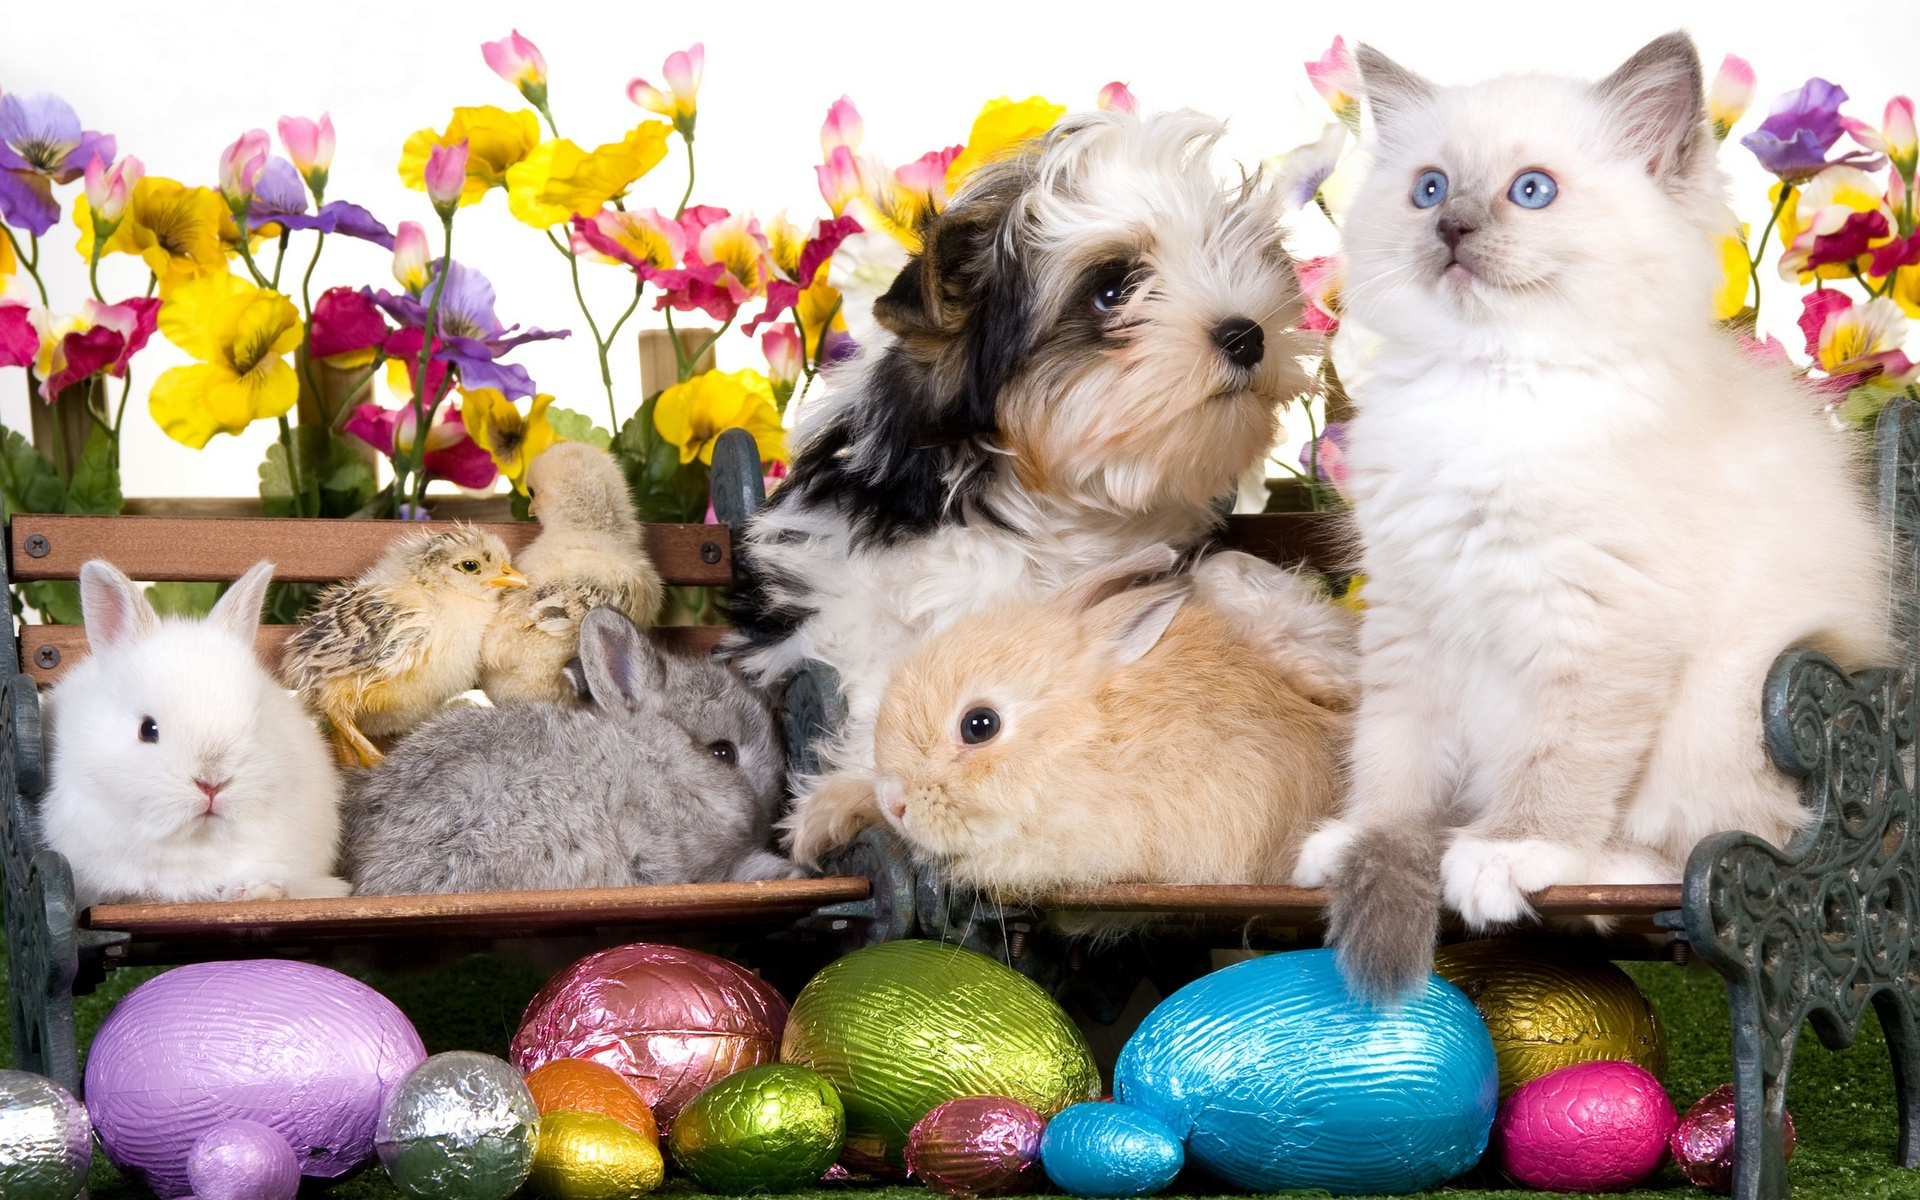 Kitten dog puppy rabbits chickens eggs flowers easter ...